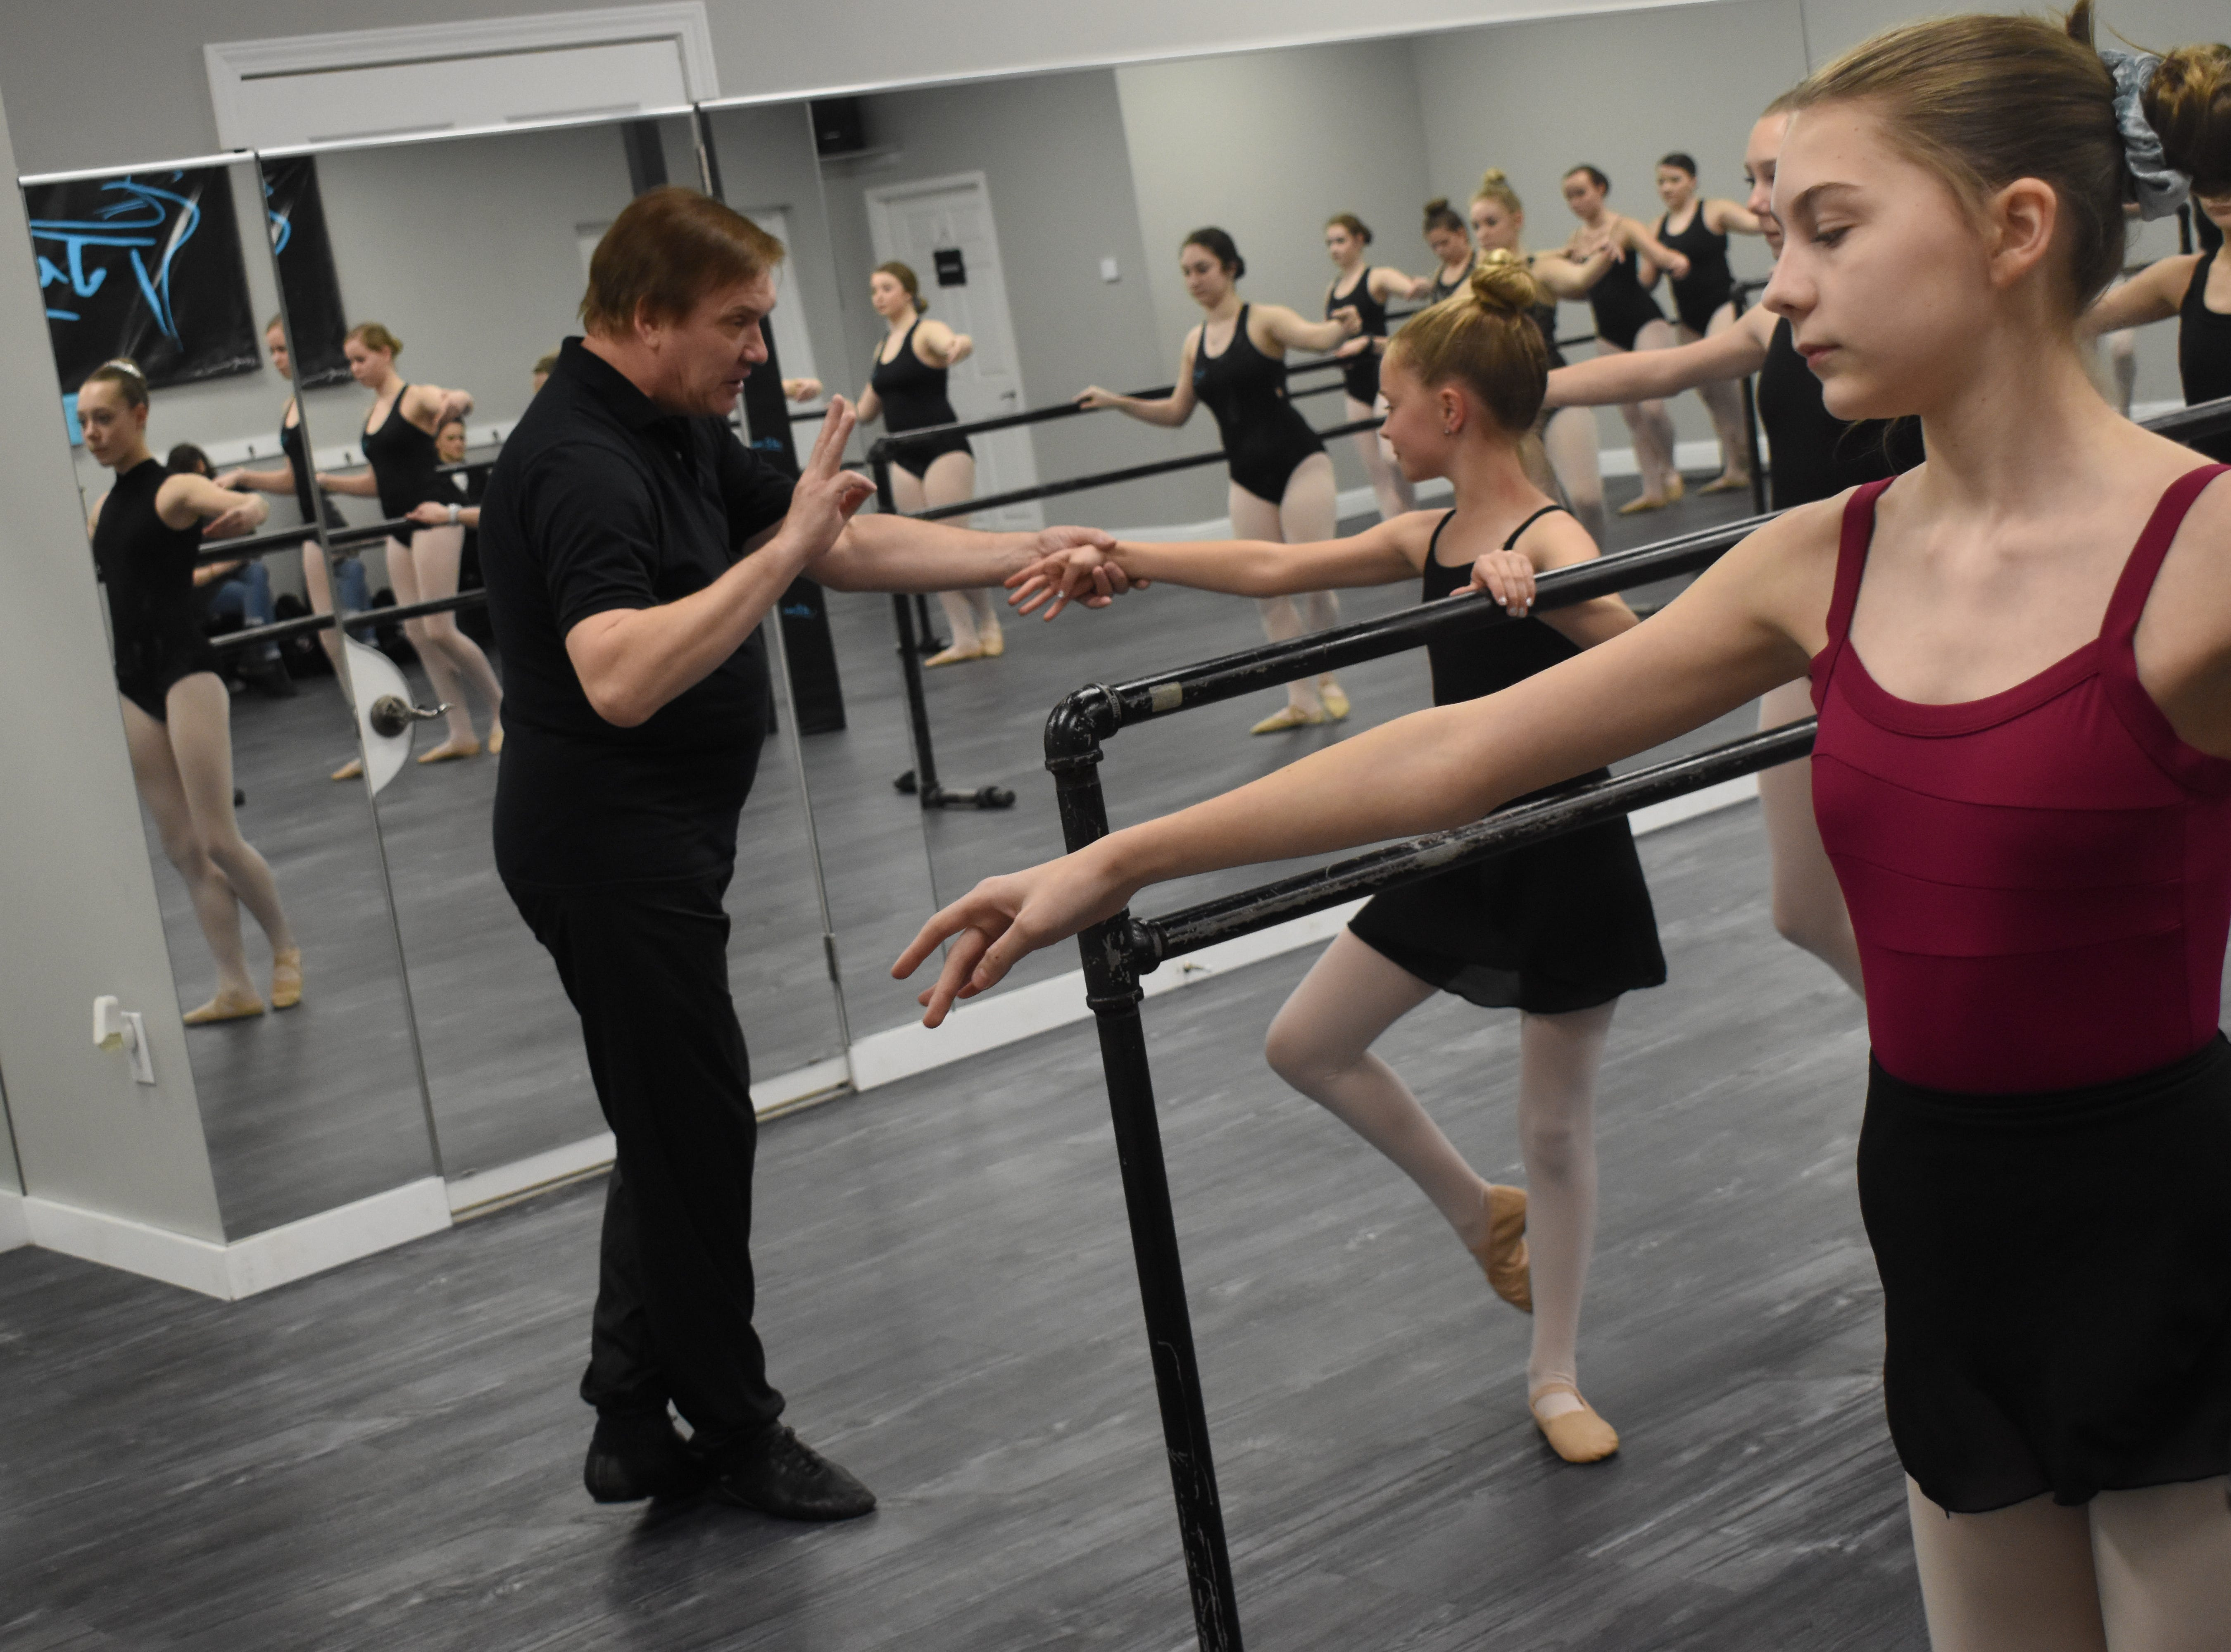 "Valery Lantratov, artistic director for the Russian National Ballet Foundation, taught a beginner ballet technique class and an intermediate ballet technique class at Just Dance dance studio Friday, Feb. 8, 2019. He recently portrayed Czar Nicholas II in the new ballet ""Rasputin."" He has toured the world as a solo artist and with his foundation. He has danced principal roles in ballets such as ""Don Quixote,"" ""Copellia,"" and ""Romeo and Juliet."" 